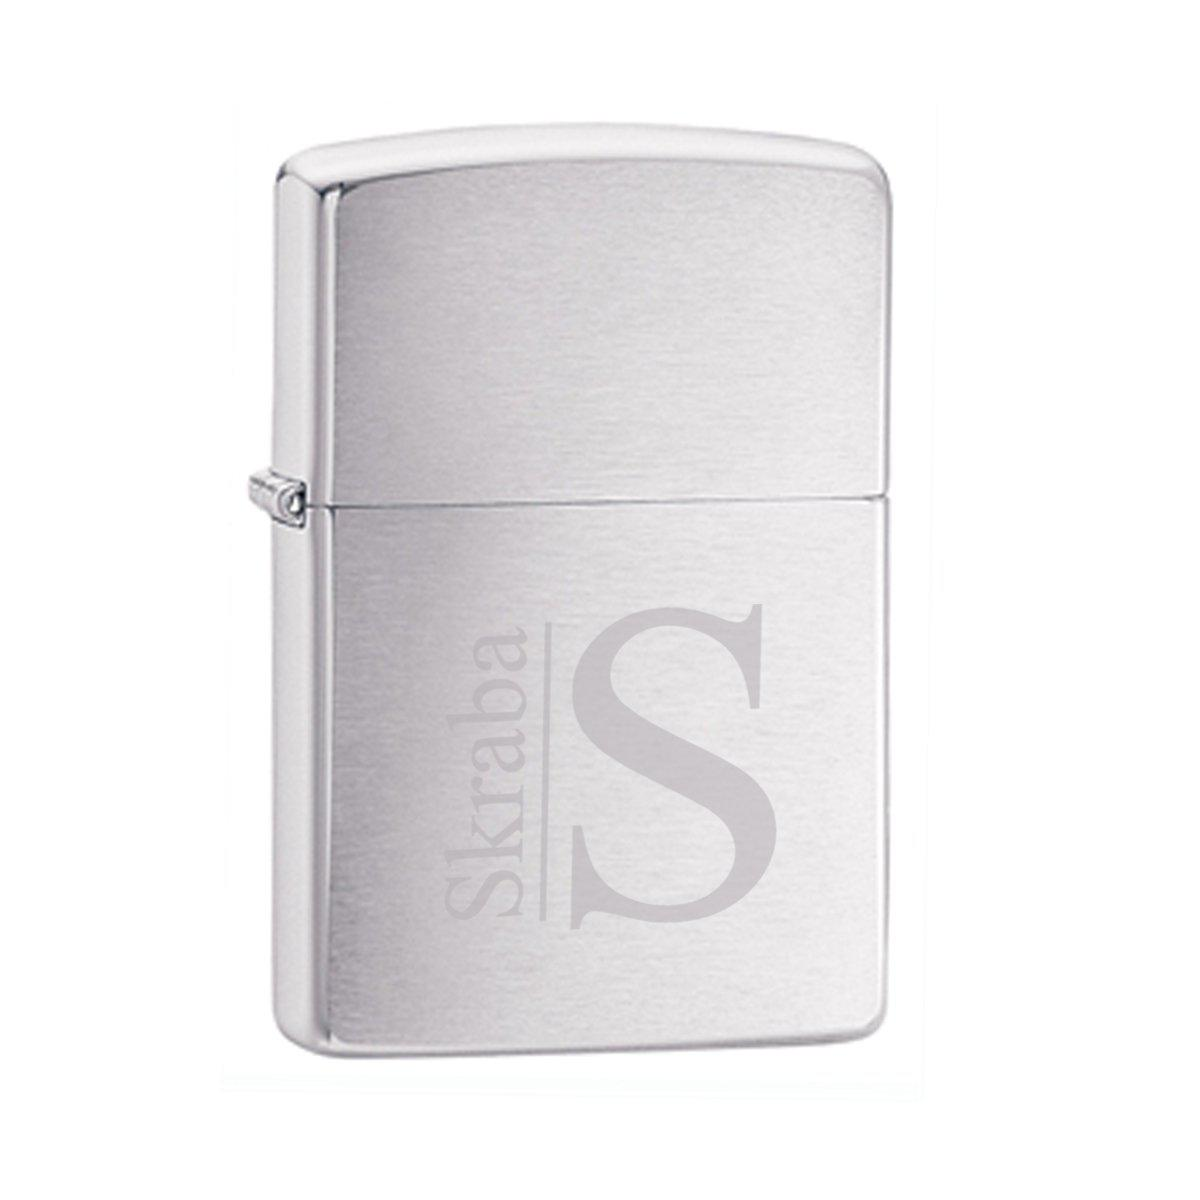 Personalized-Brushed-Chrome-Zippo-Lighter